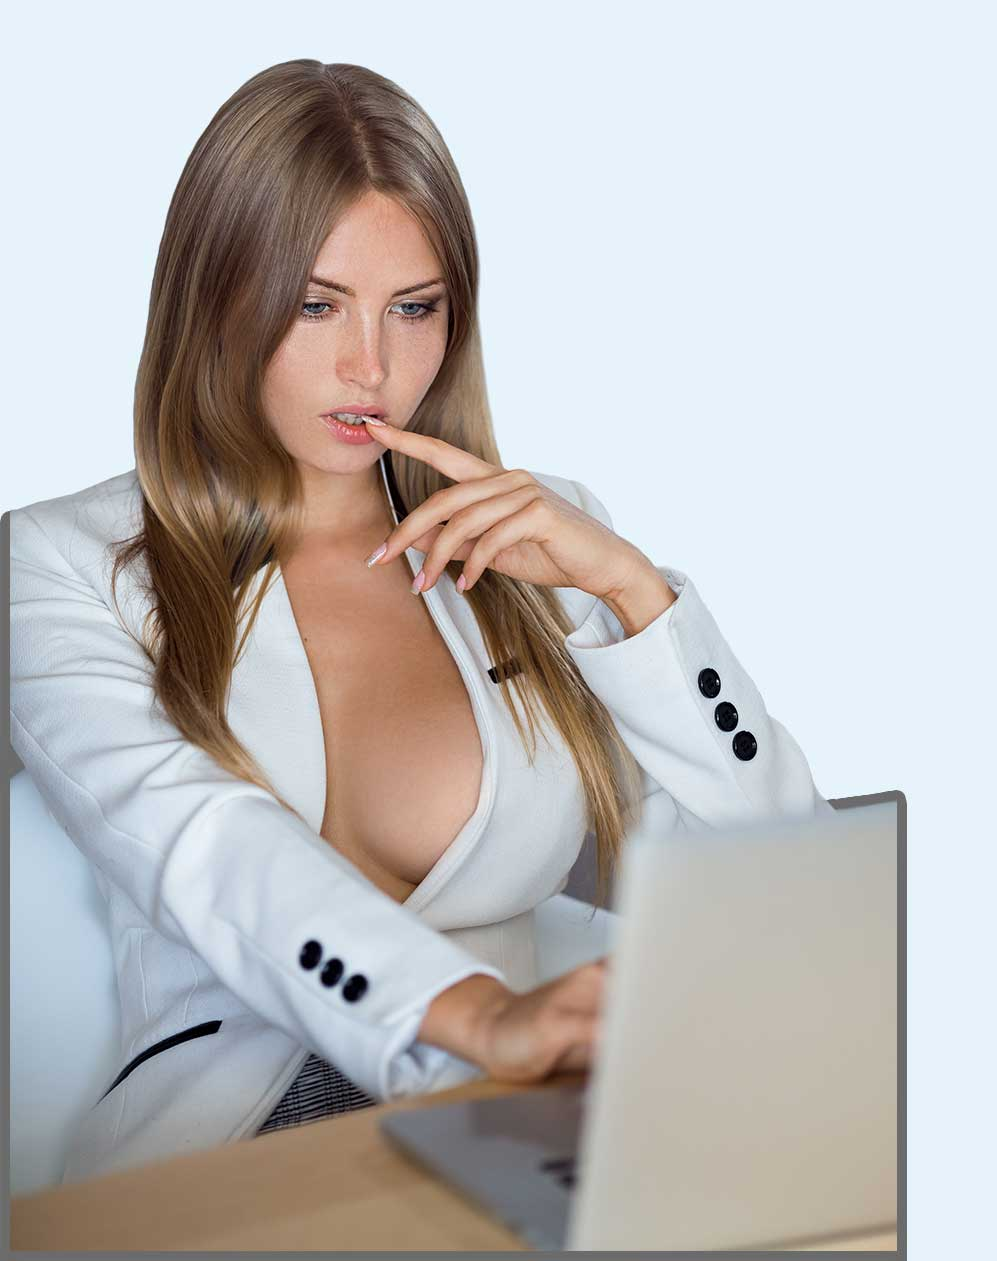 How To Create Adult Webcam Site